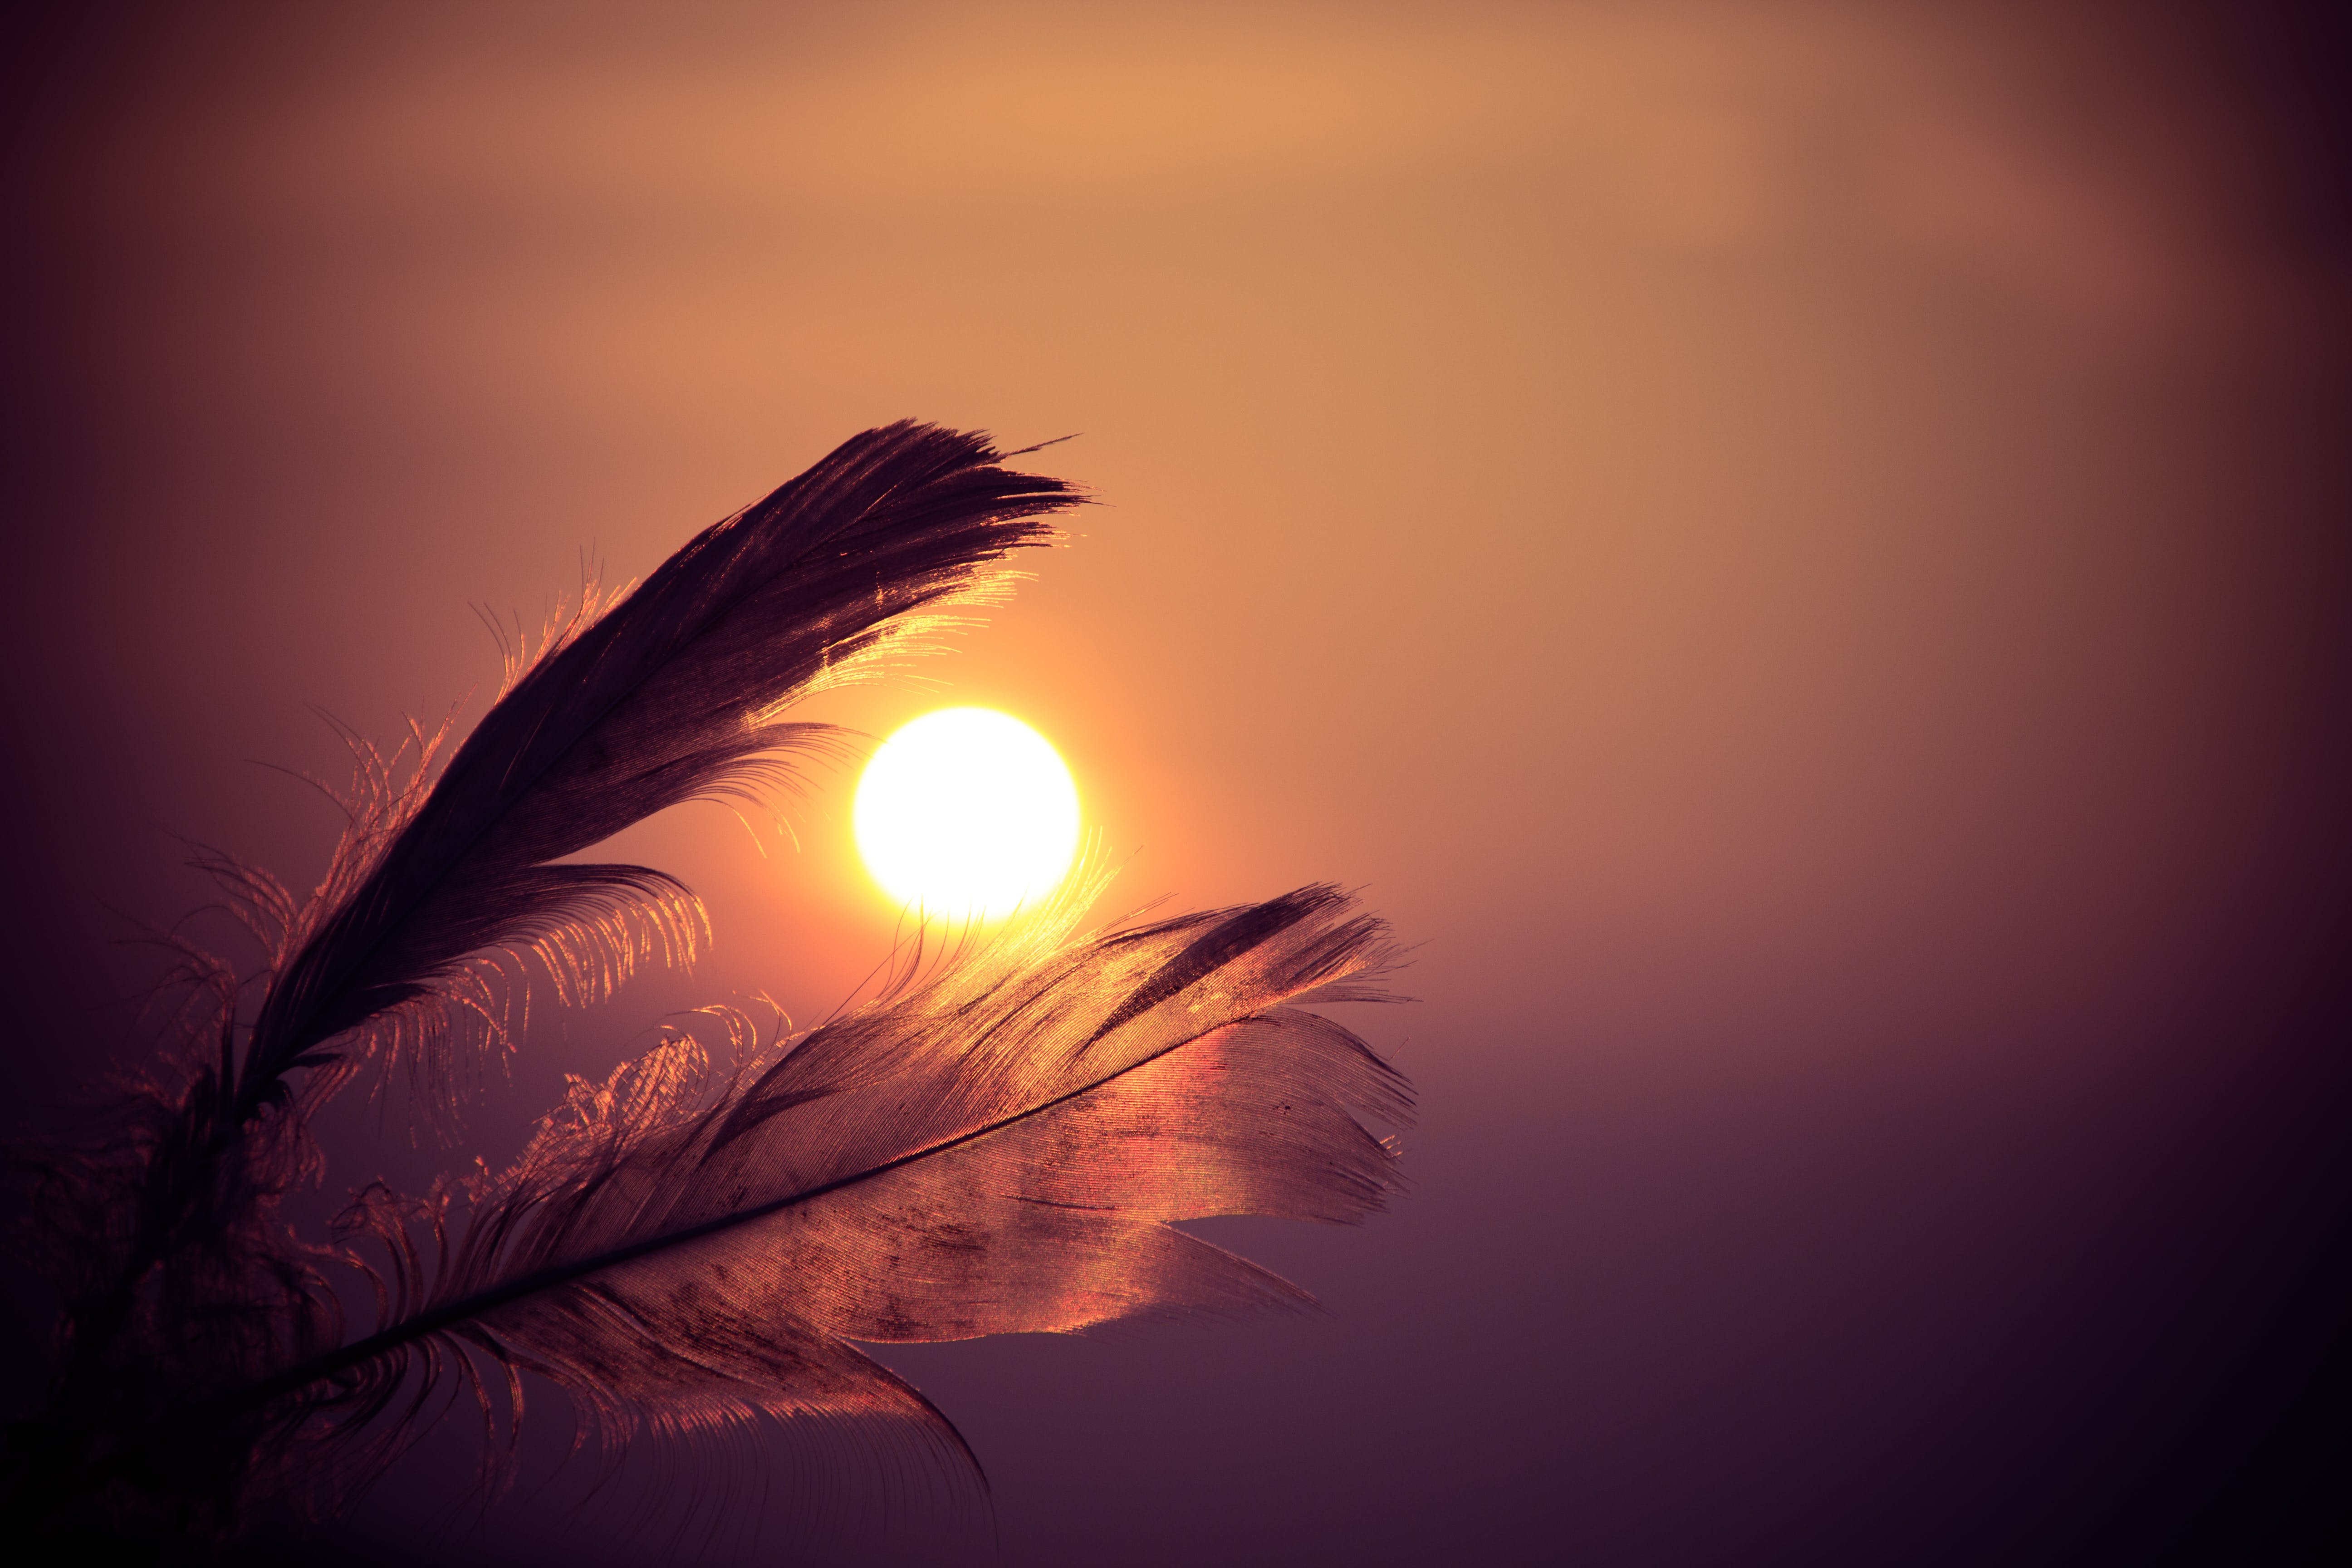 Free stock photo of sky, sunset, sun, feathers